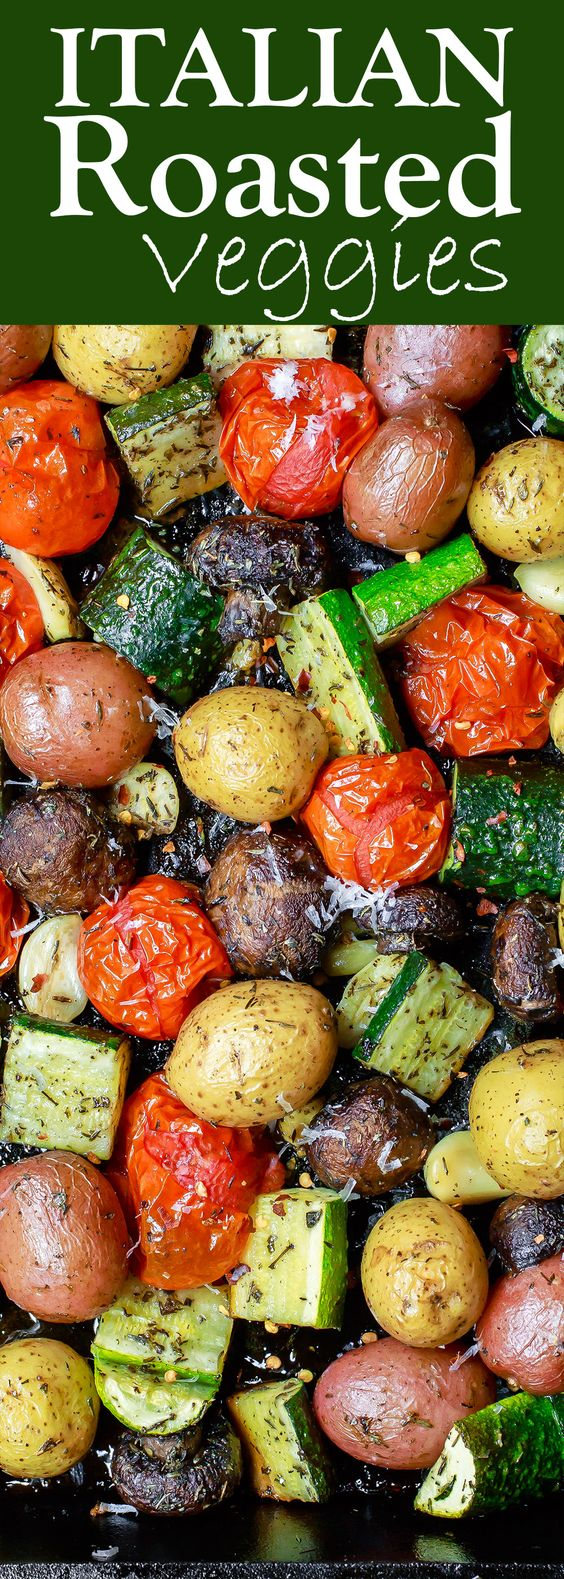 ITALIAN OVEN ROASTED VEGETABLES #italian #oven #roasted #vegtables #veggies #vegetarianrecipes #veganrecipes